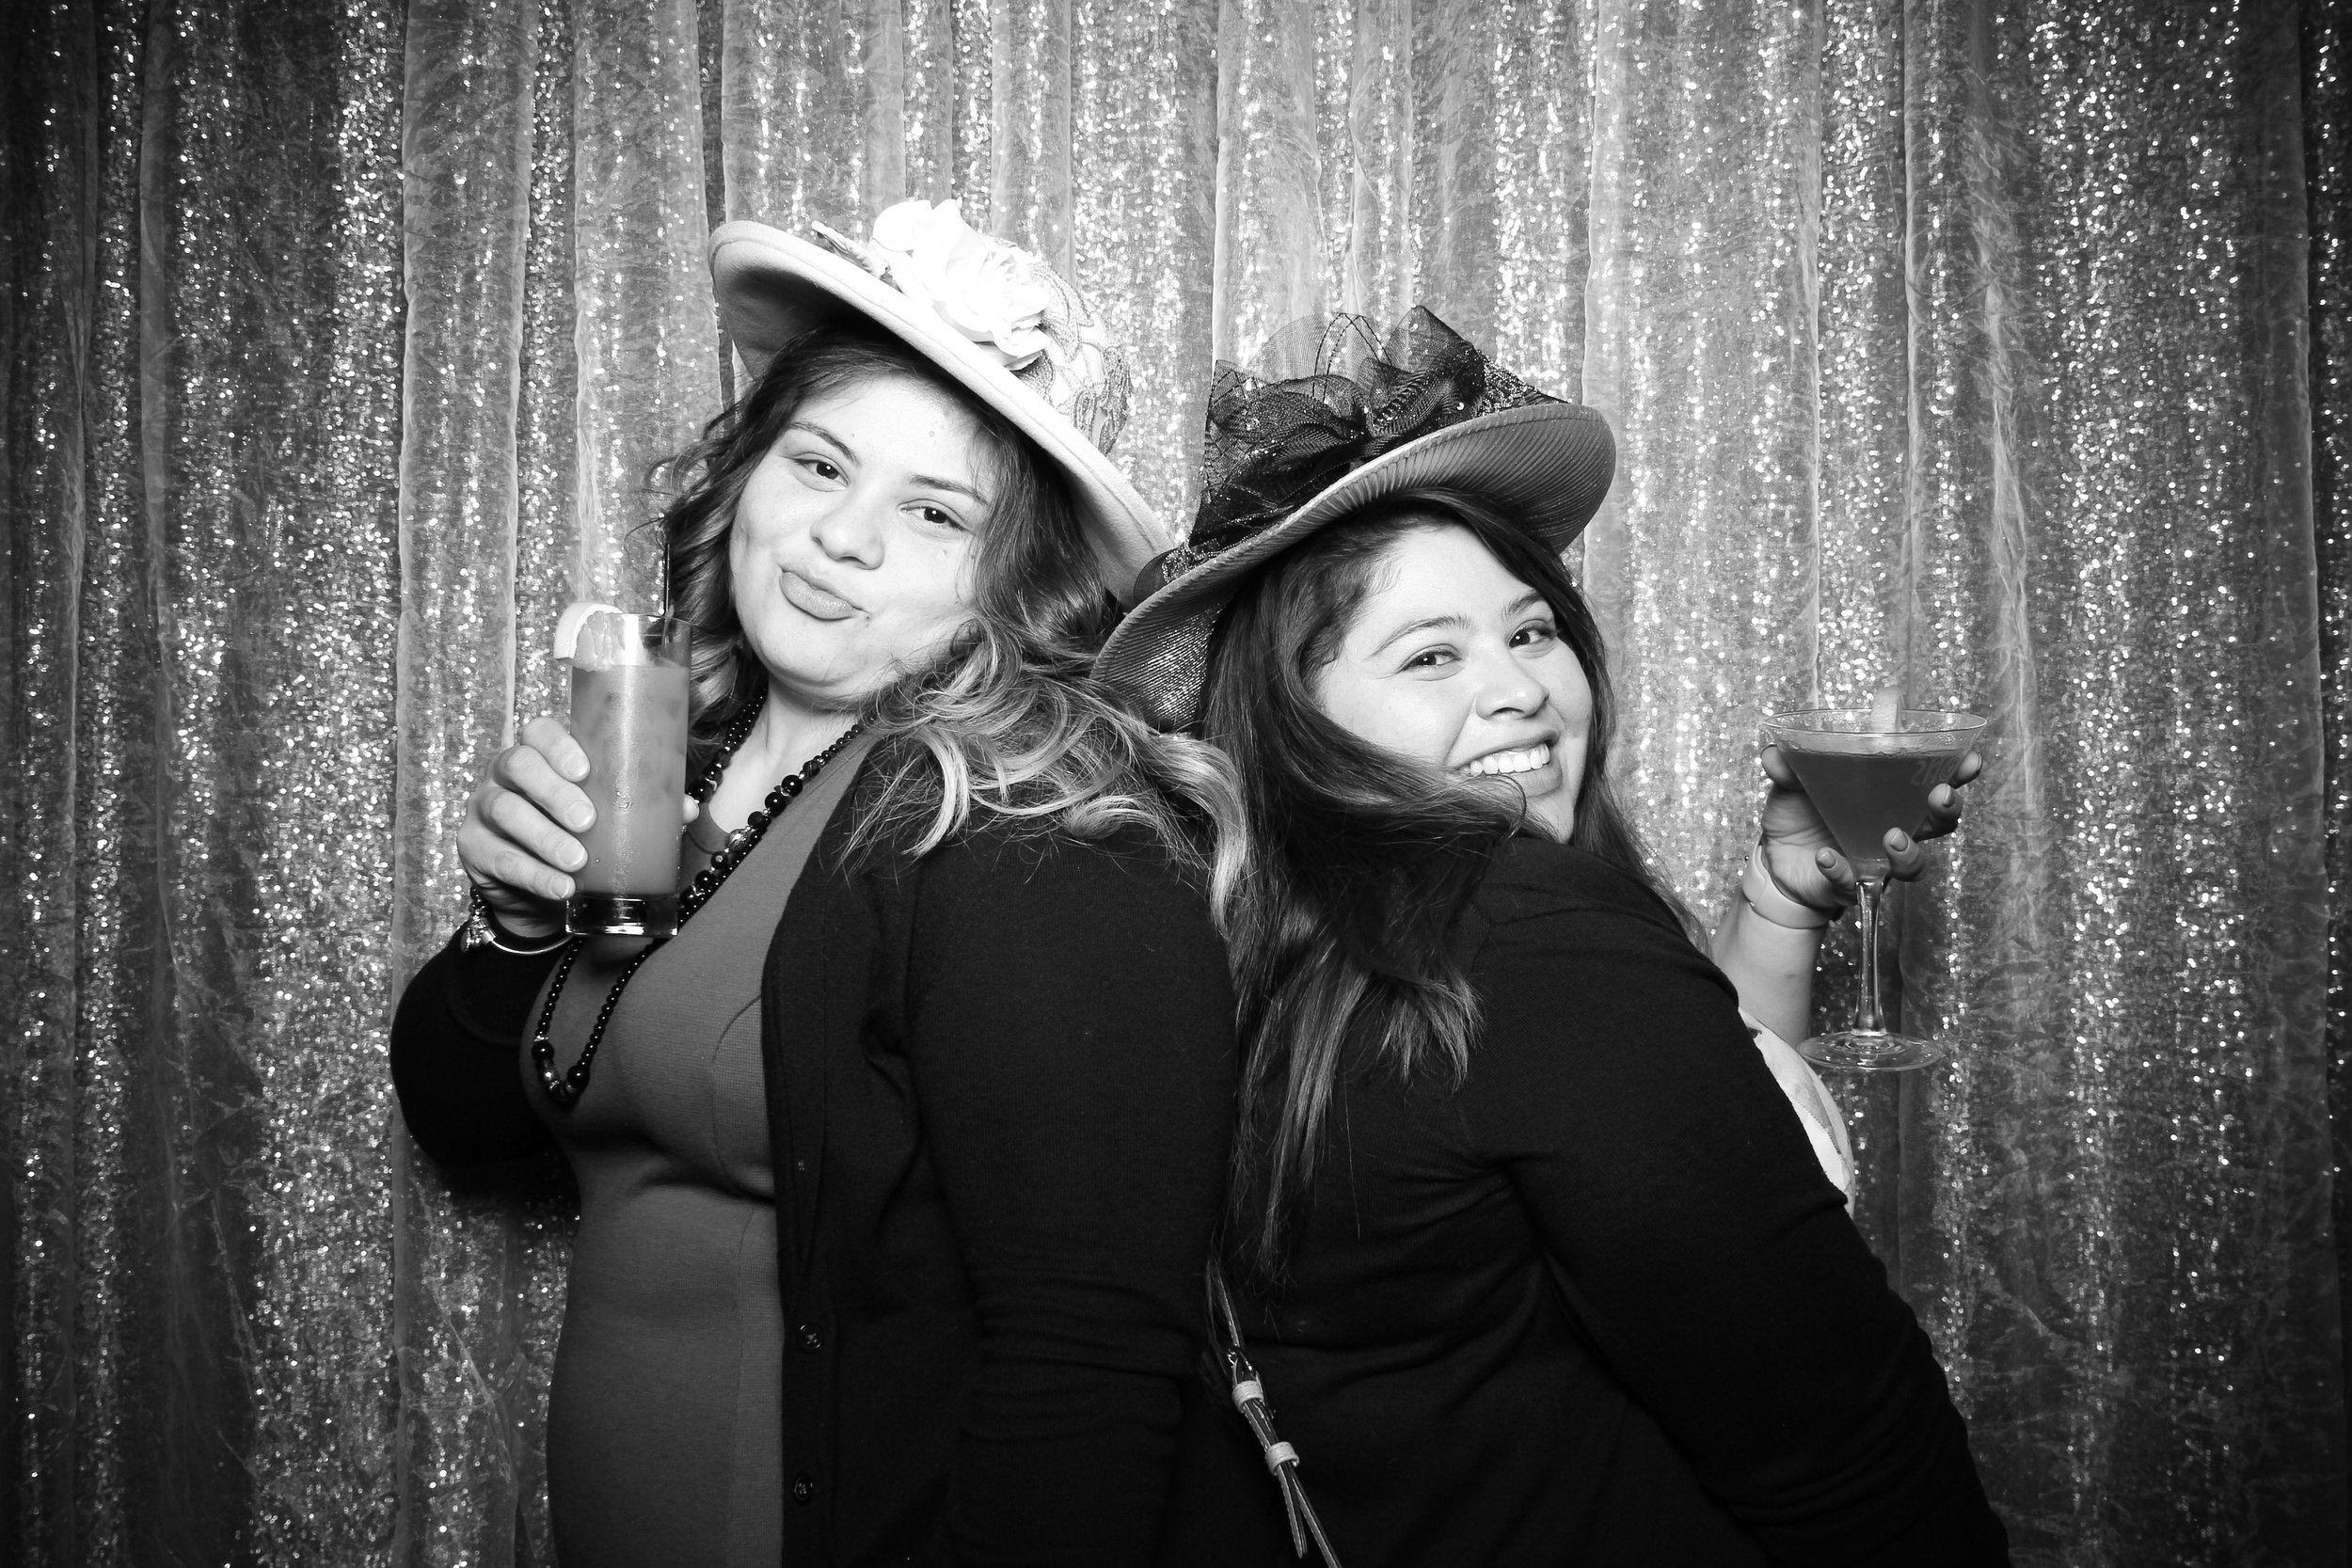 Chicago_Vintage_Photobooth_Montgomery_Club_Holiday_Party_02.jpg